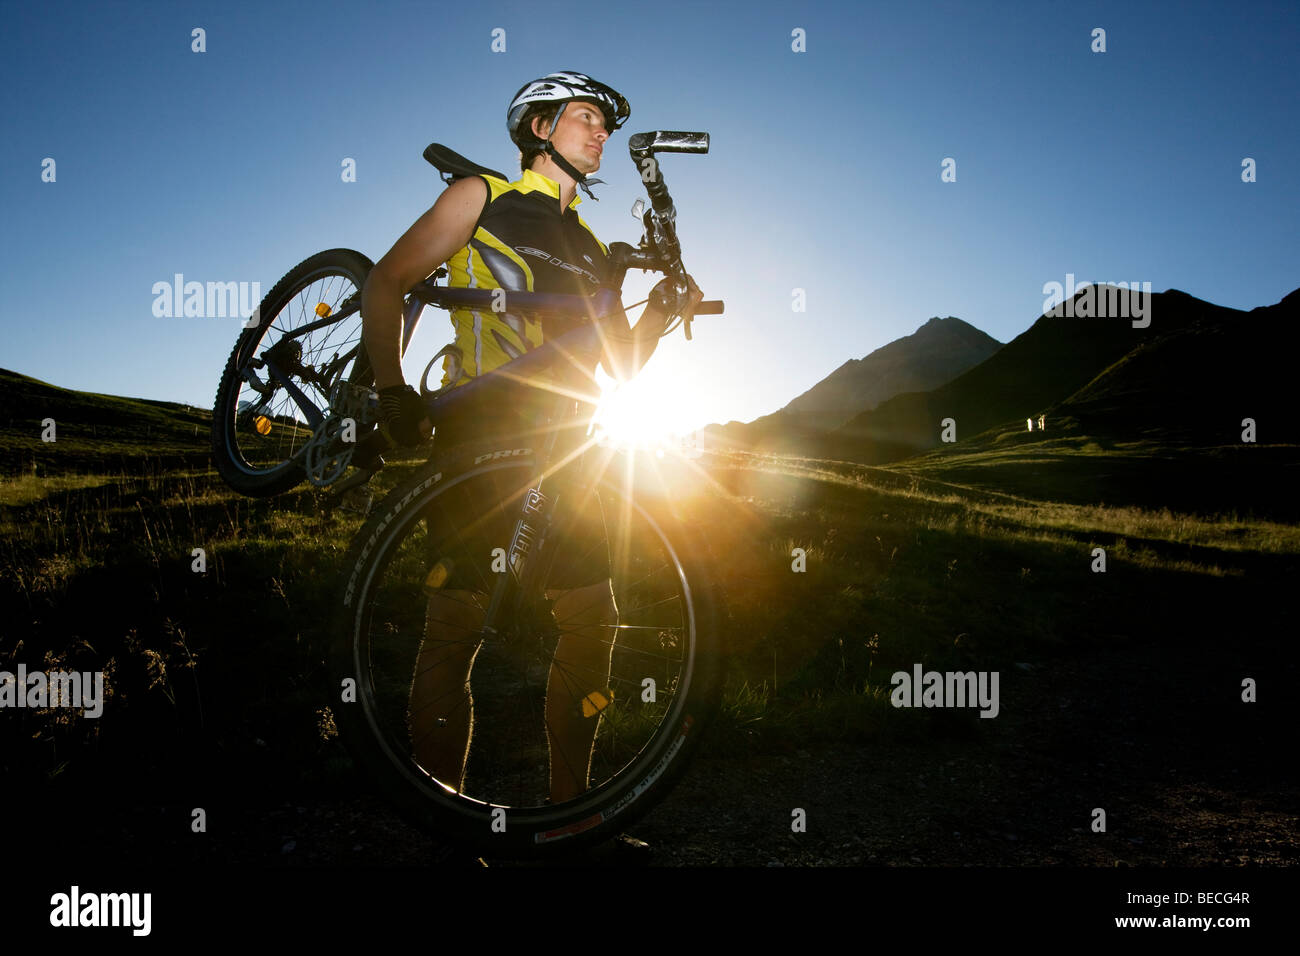 Mountainbiker carrying his bike, Northern Tyrol, Austria, Europe - Stock Image